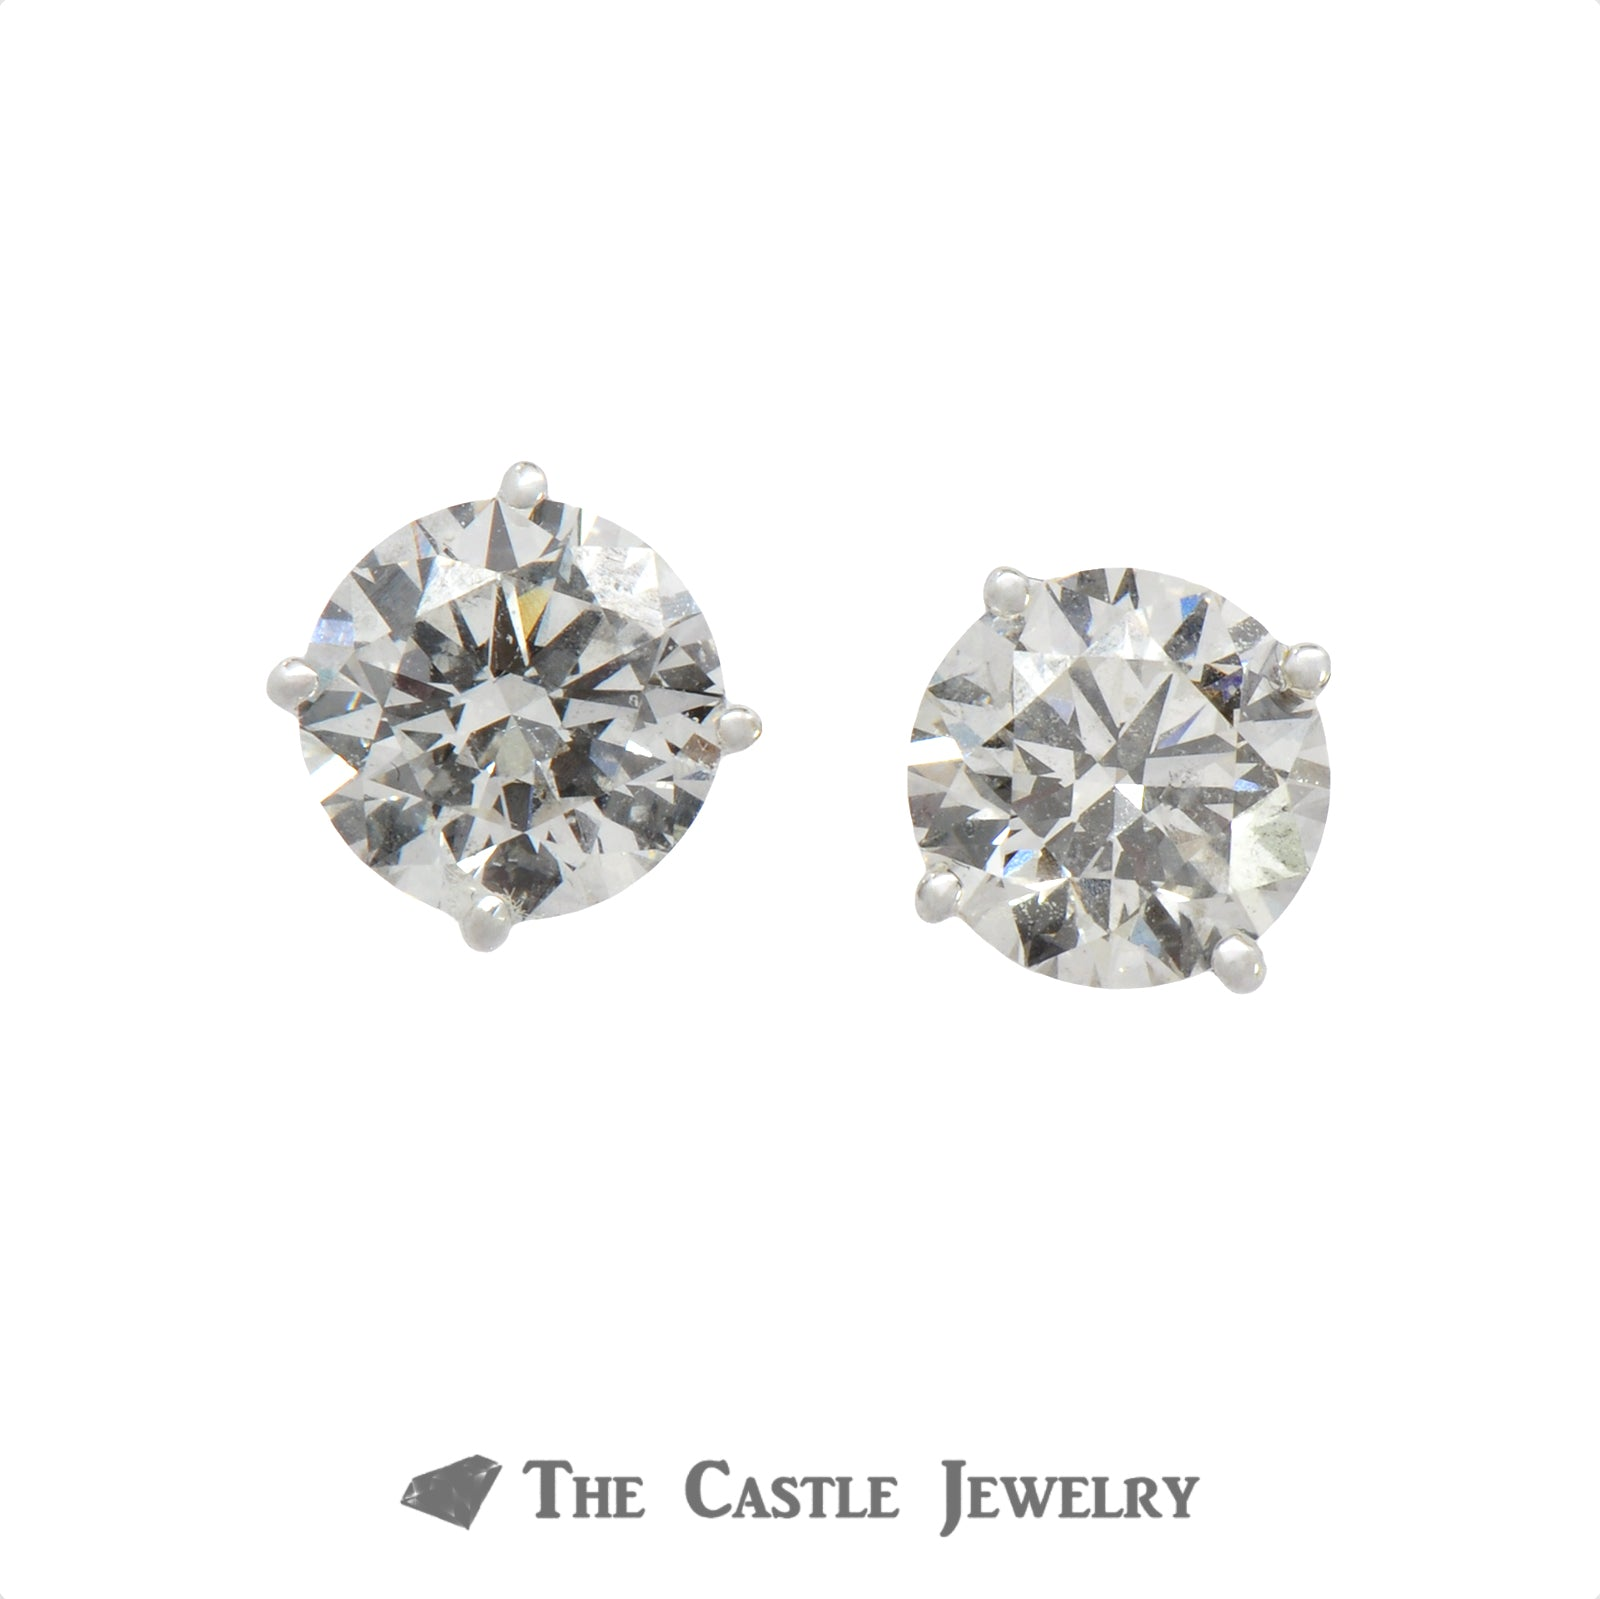 Lab Grown Certified Round Brilliant Cut Diamond Stud Earrings 3.01 cttw